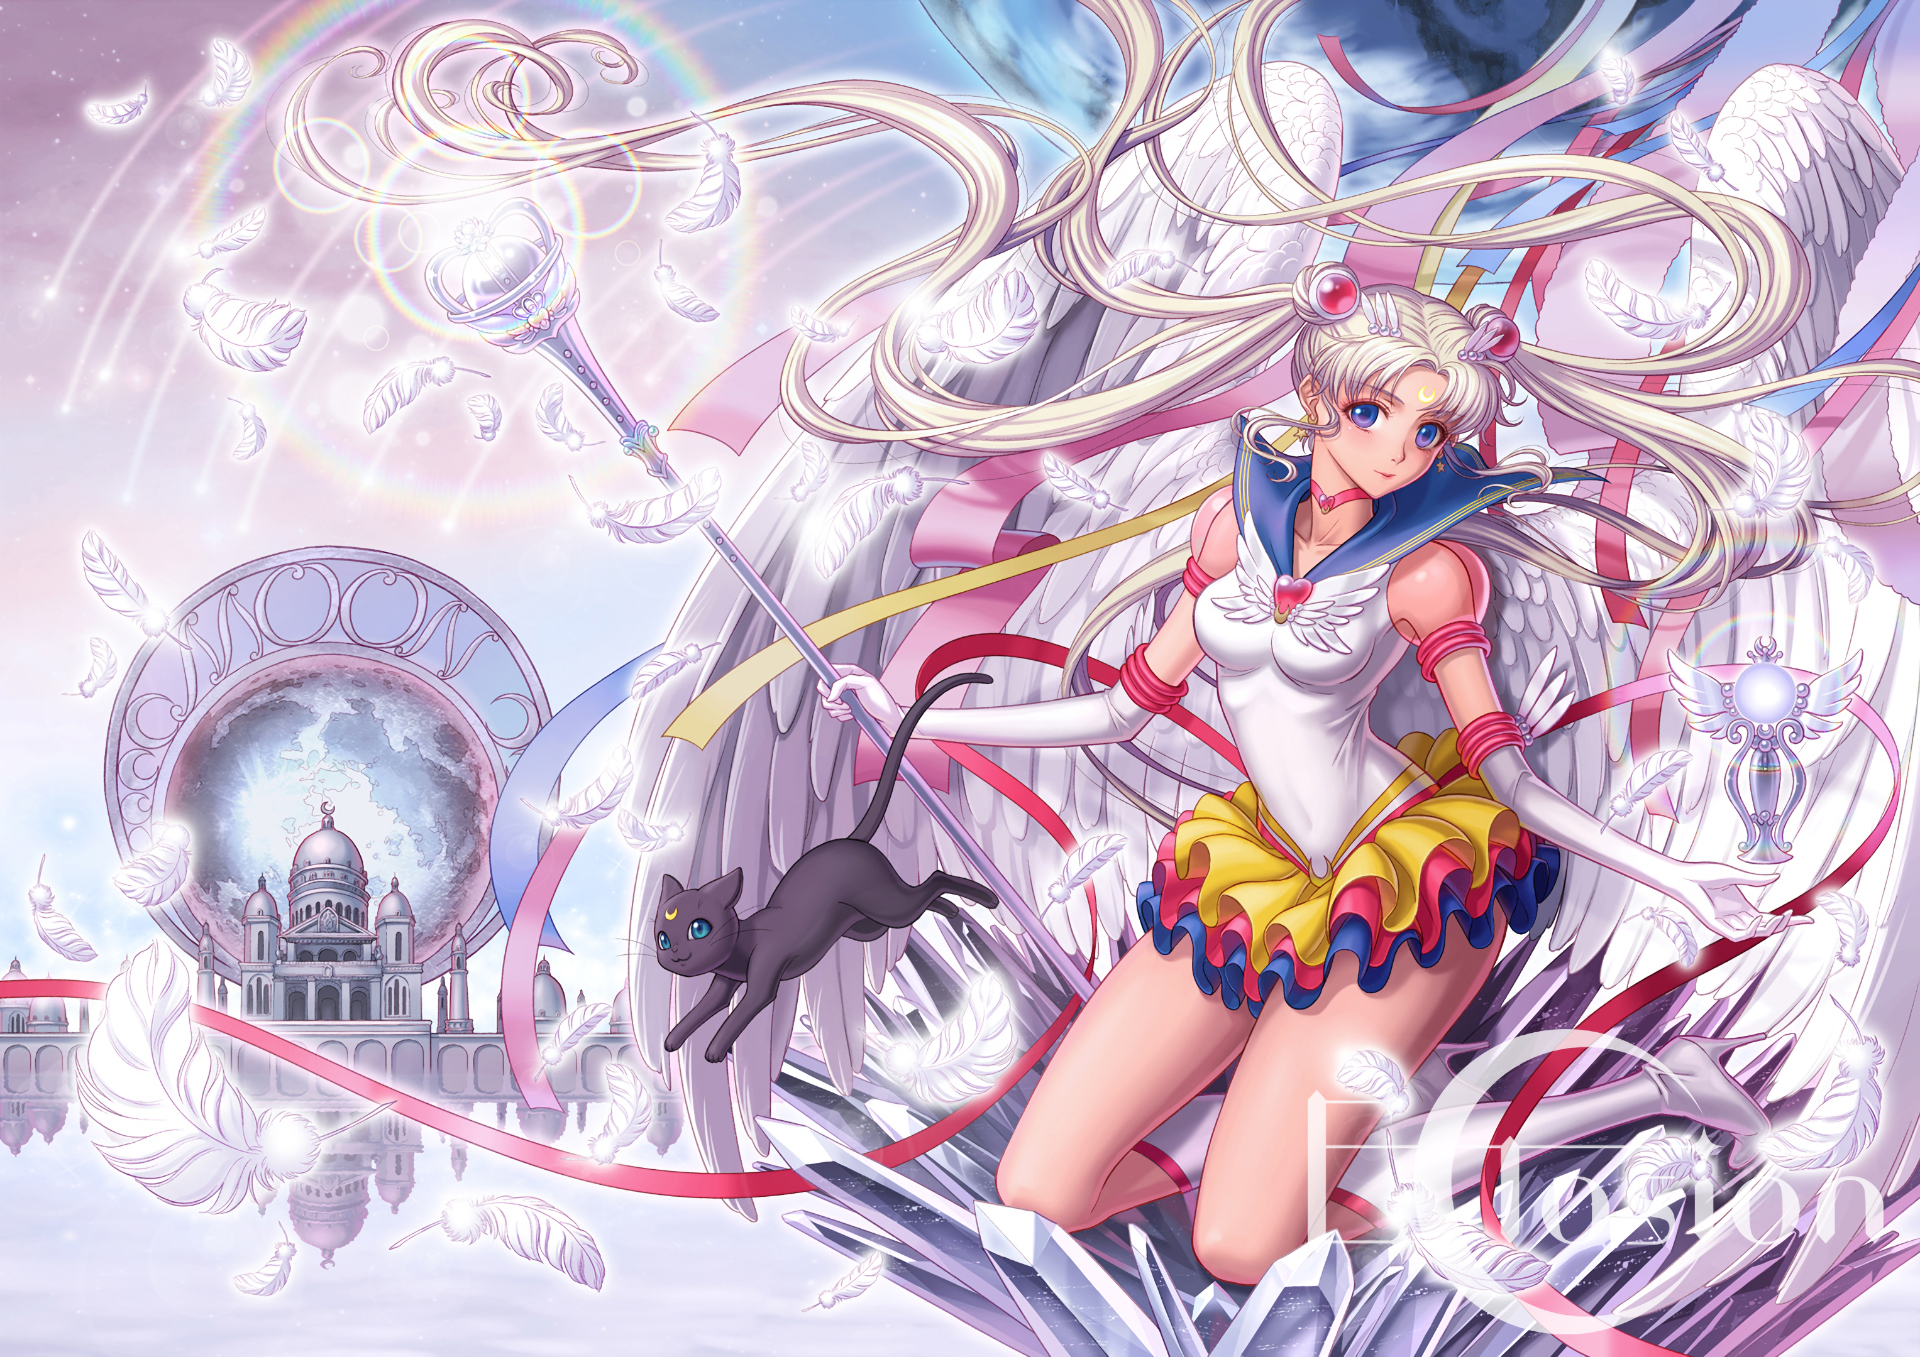 Download Wallpaper Macbook Sailor Moon - thumb-1920-710958  Picture_74657.png